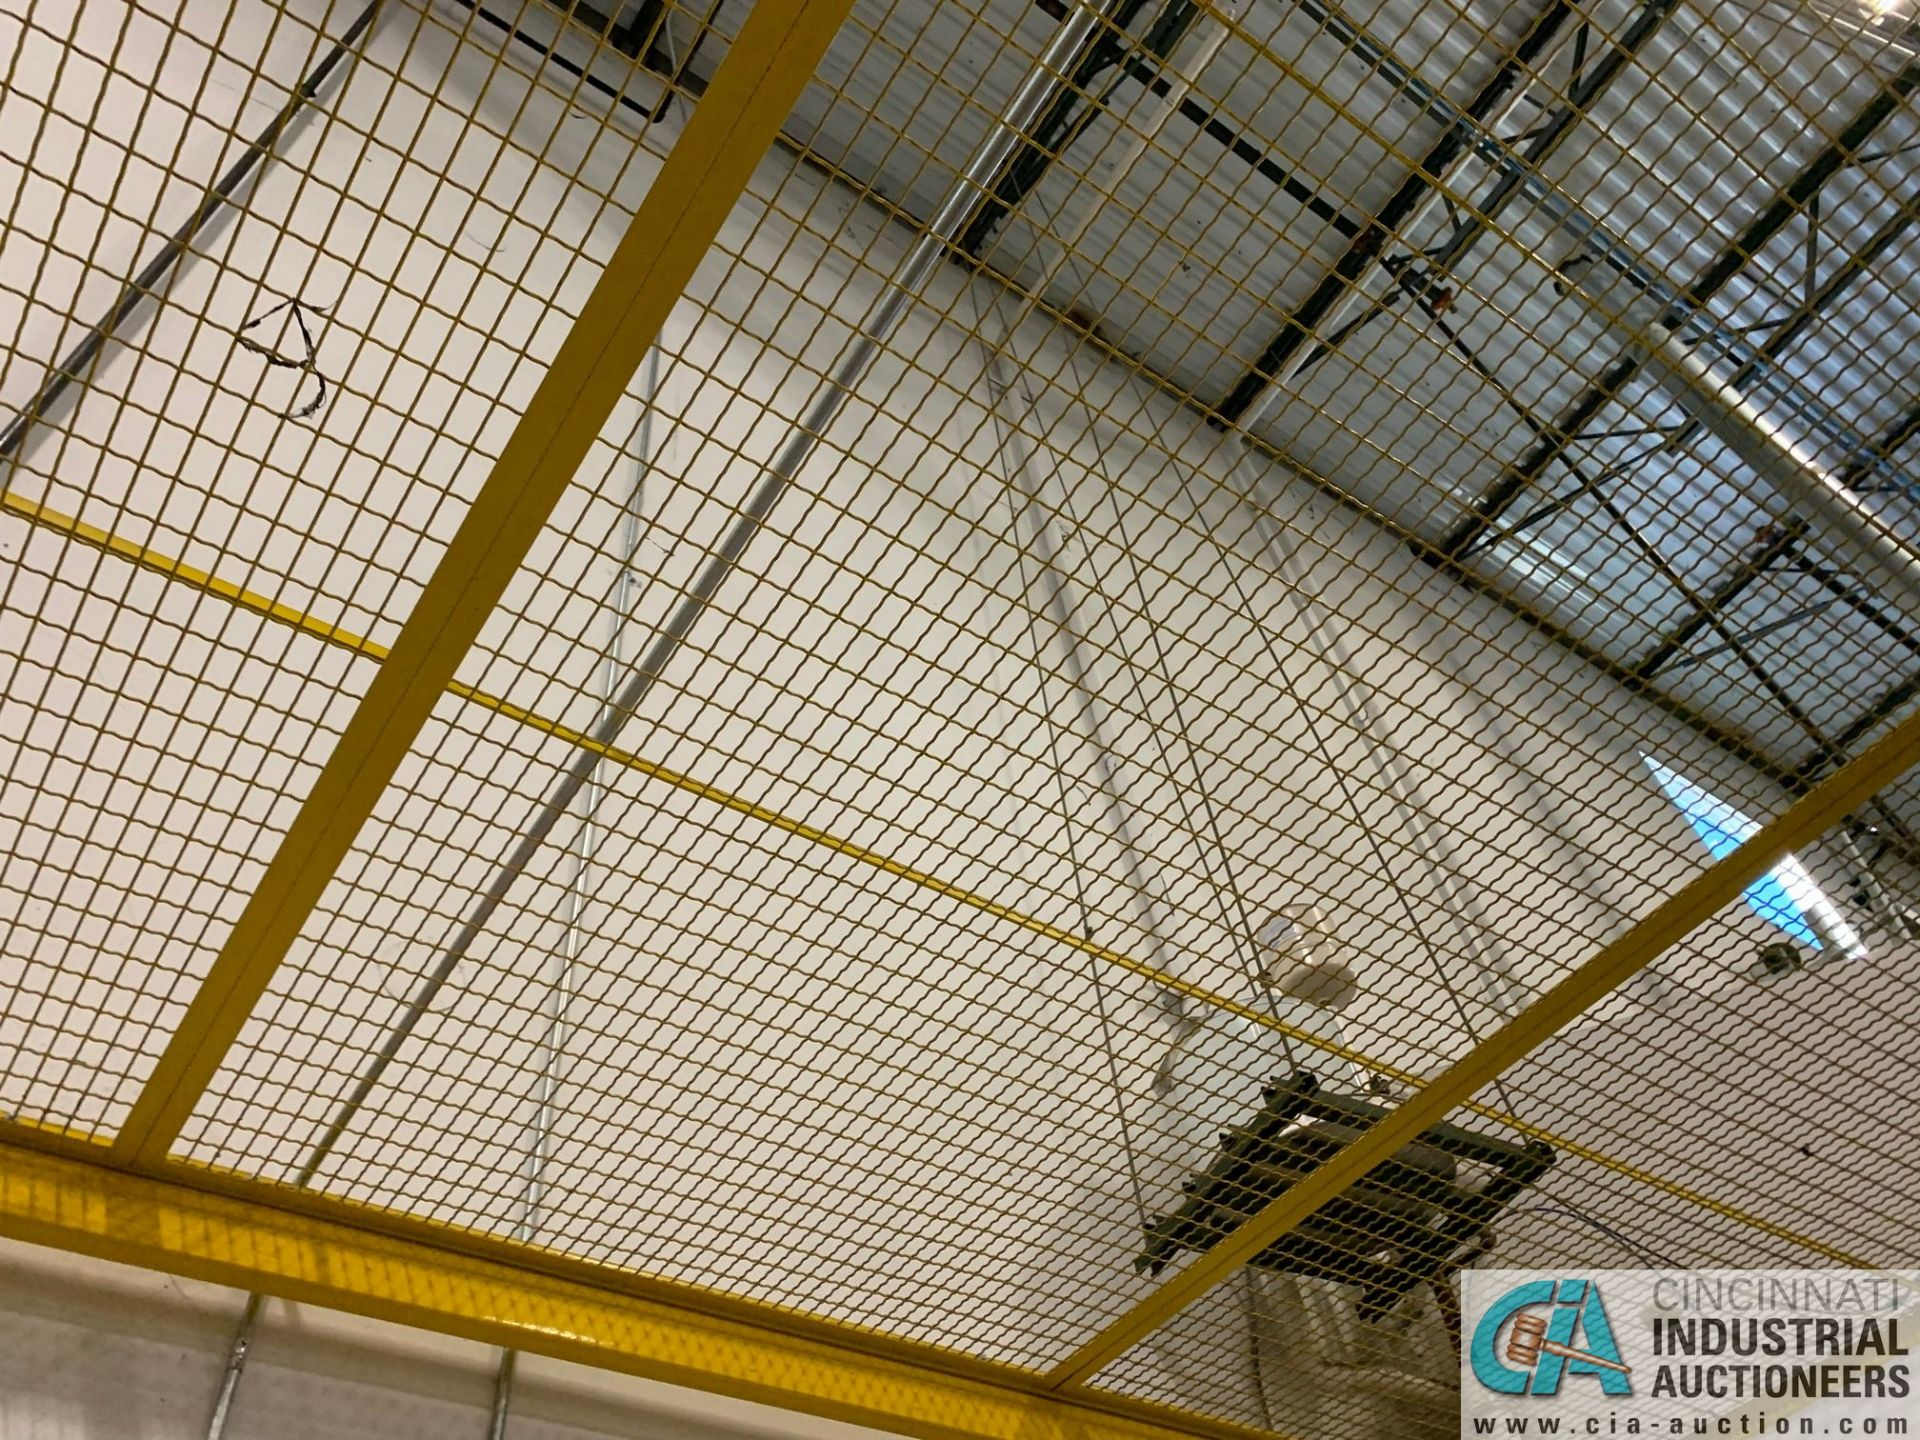 SAFETY CAGE - BACK DRIVERS (5400 OAKLEY INDUSTRIAL BLVD., FAIRBURN, GA 30213) - Image 5 of 7